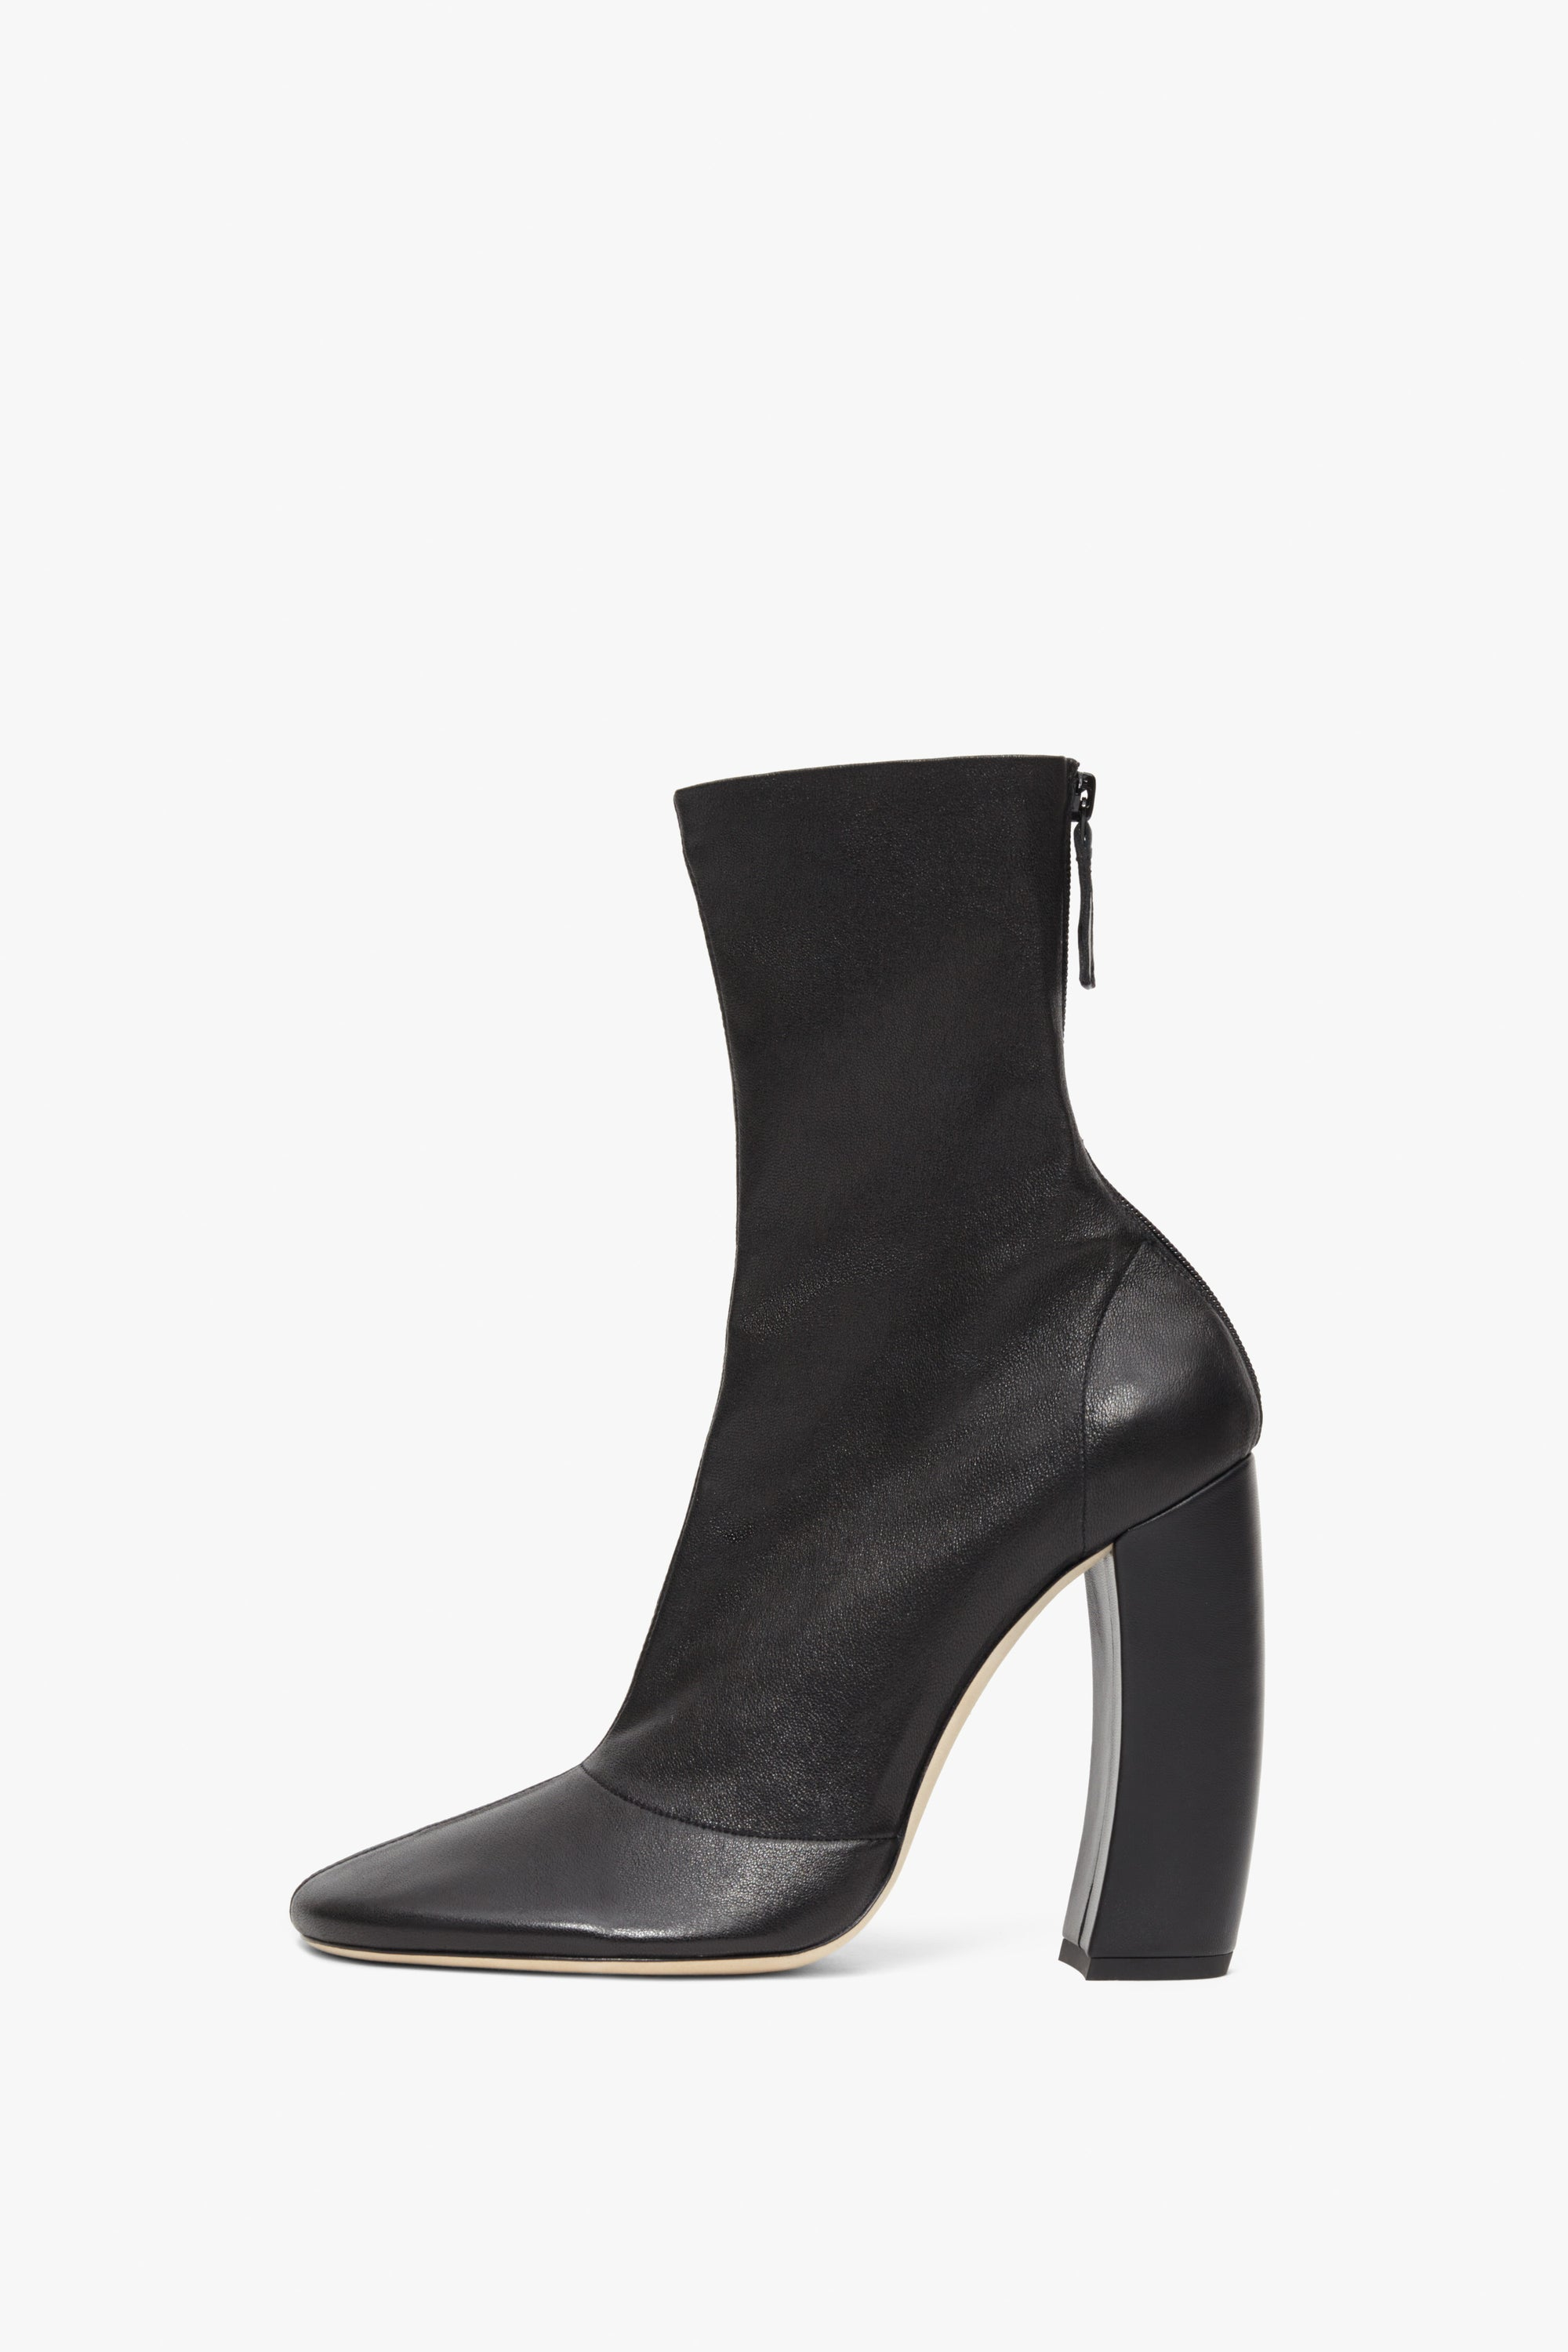 Patti 115mm Stretch Boot in Black